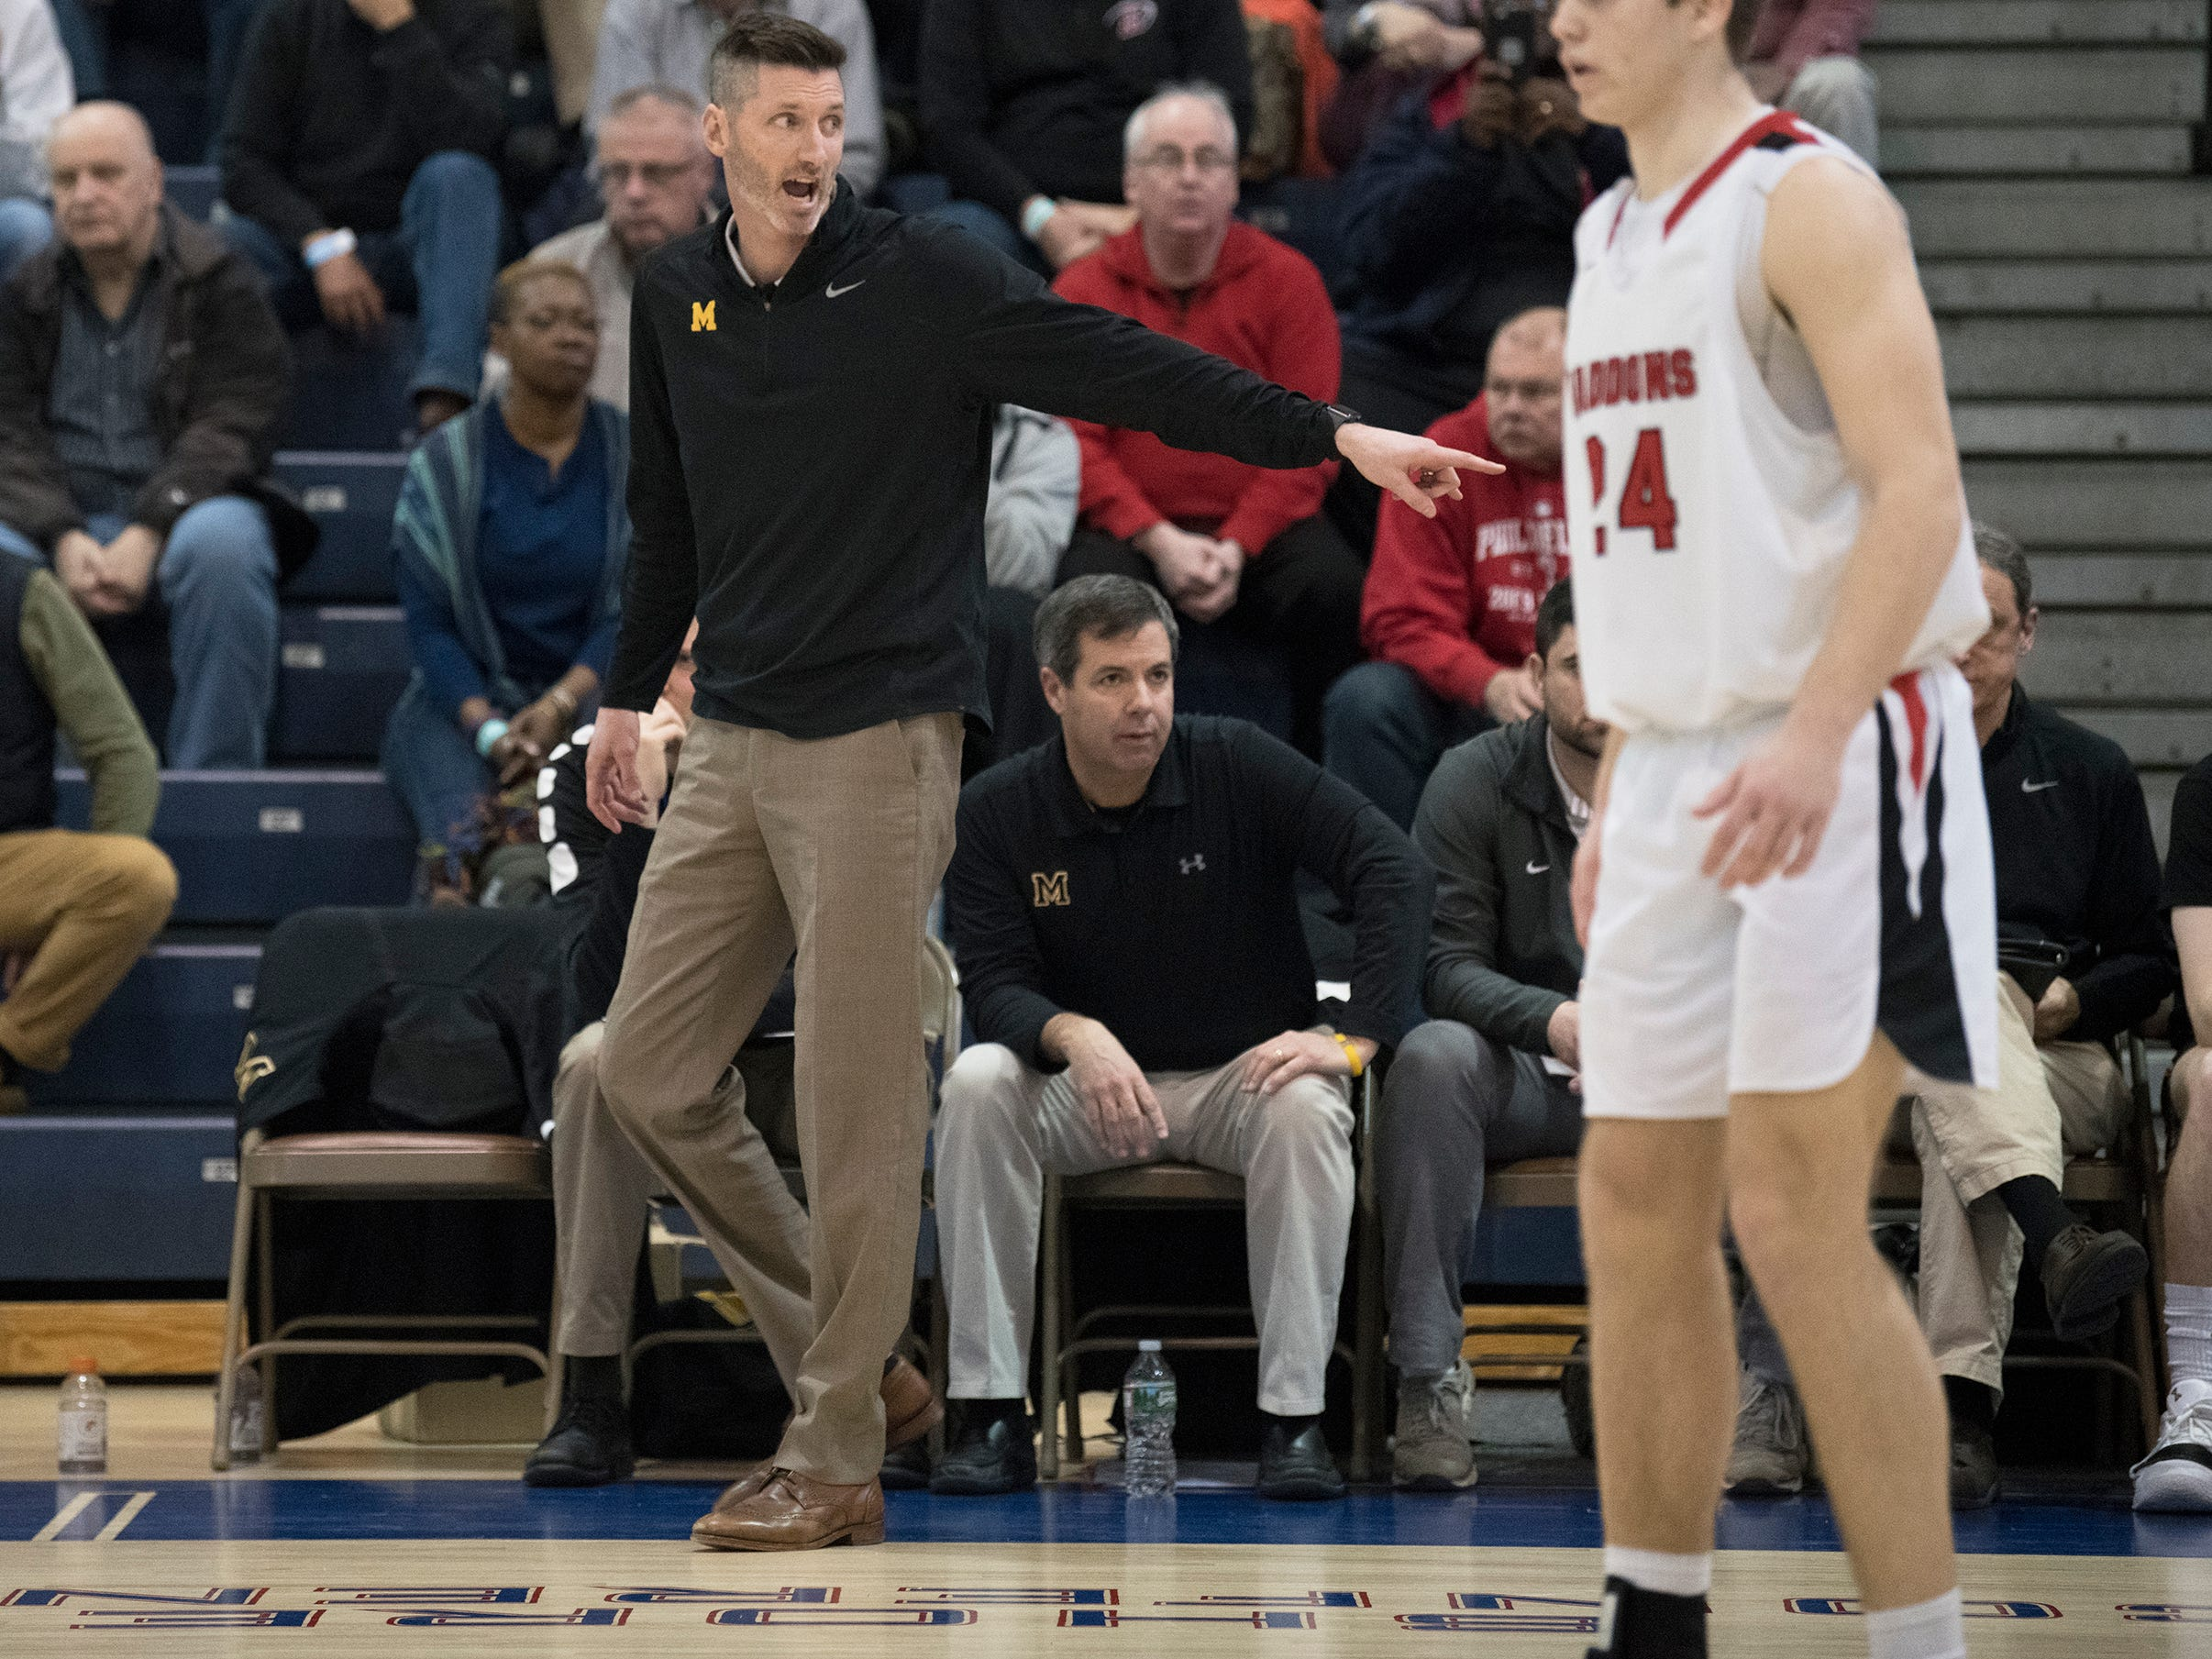 Moorestown High School's boys basketball coach Shawn Anstey instructs his players  during the boys basketball Tournament of Champions quarterfinal game between Moorestown and Haddonfield played at Toms River North High School on Wednesday, March 13, 2019.   Moorestown defeated Haddonfield, 60-59.